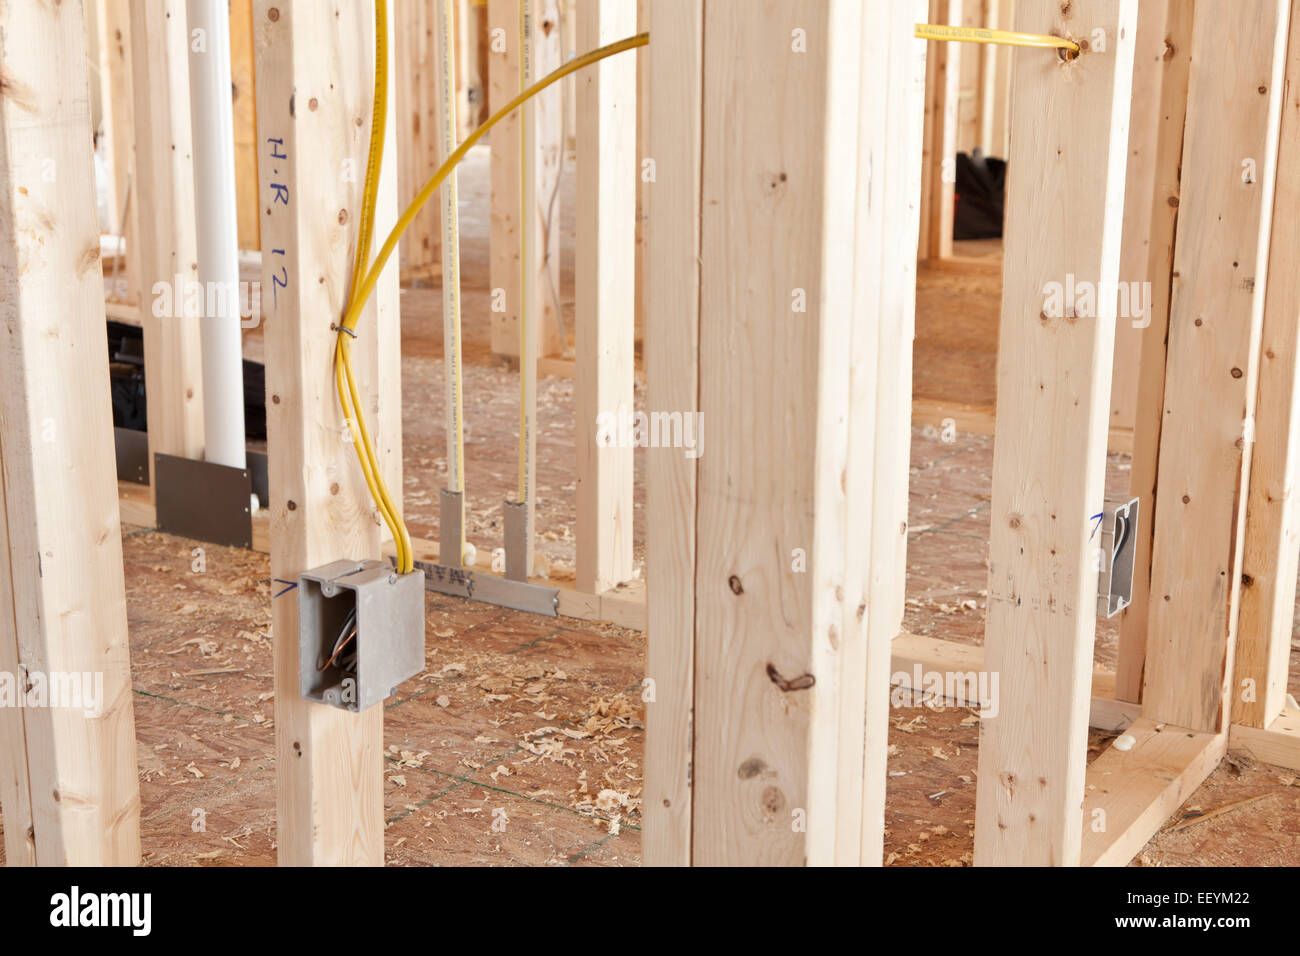 hight resolution of electrical wiring to a receptacle box in a new home under construction